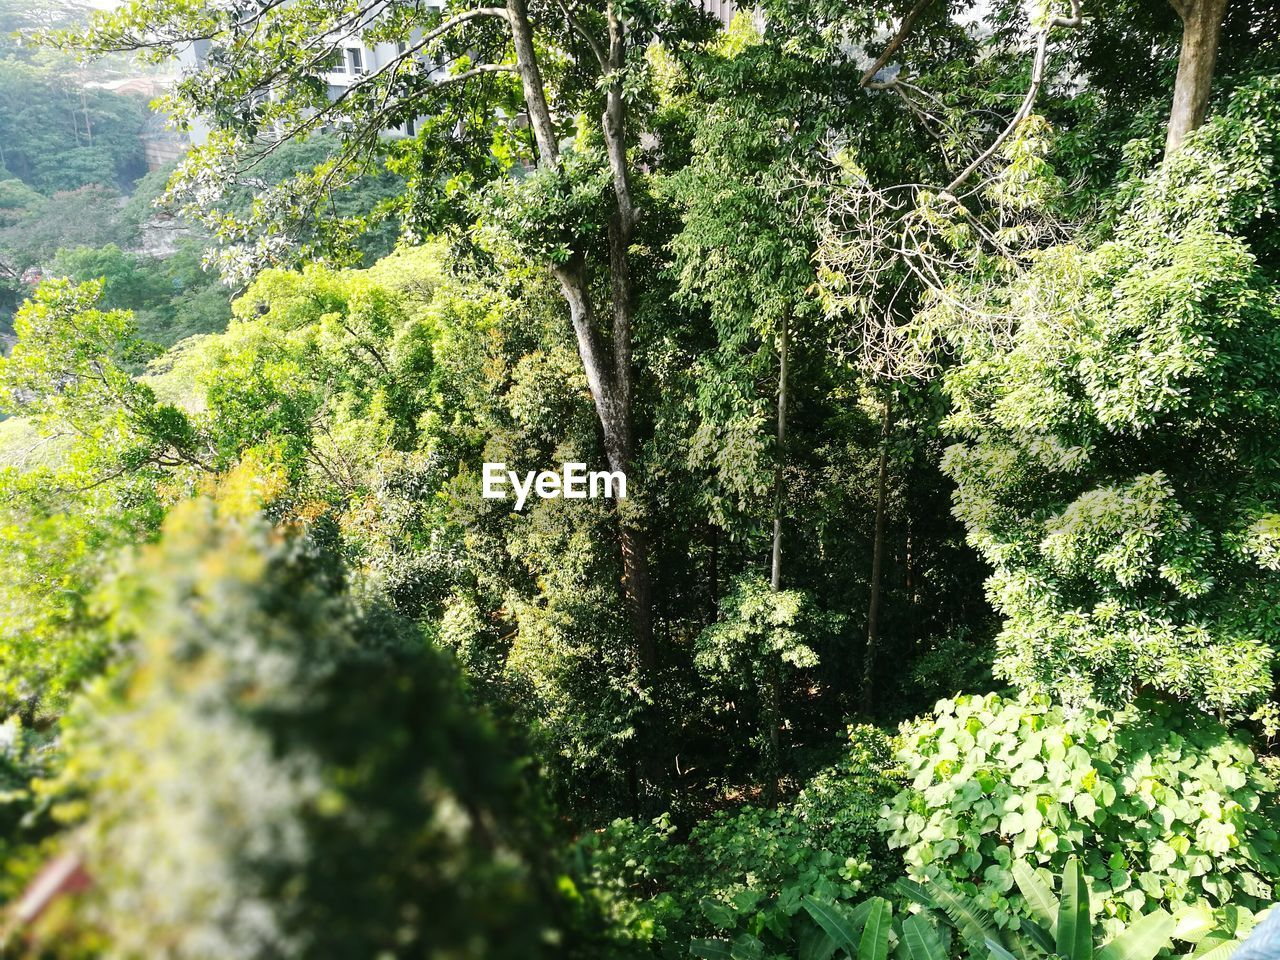 nature, growth, green, tree, forest, lush, foliage, day, outdoors, plant, no people, beauty in nature